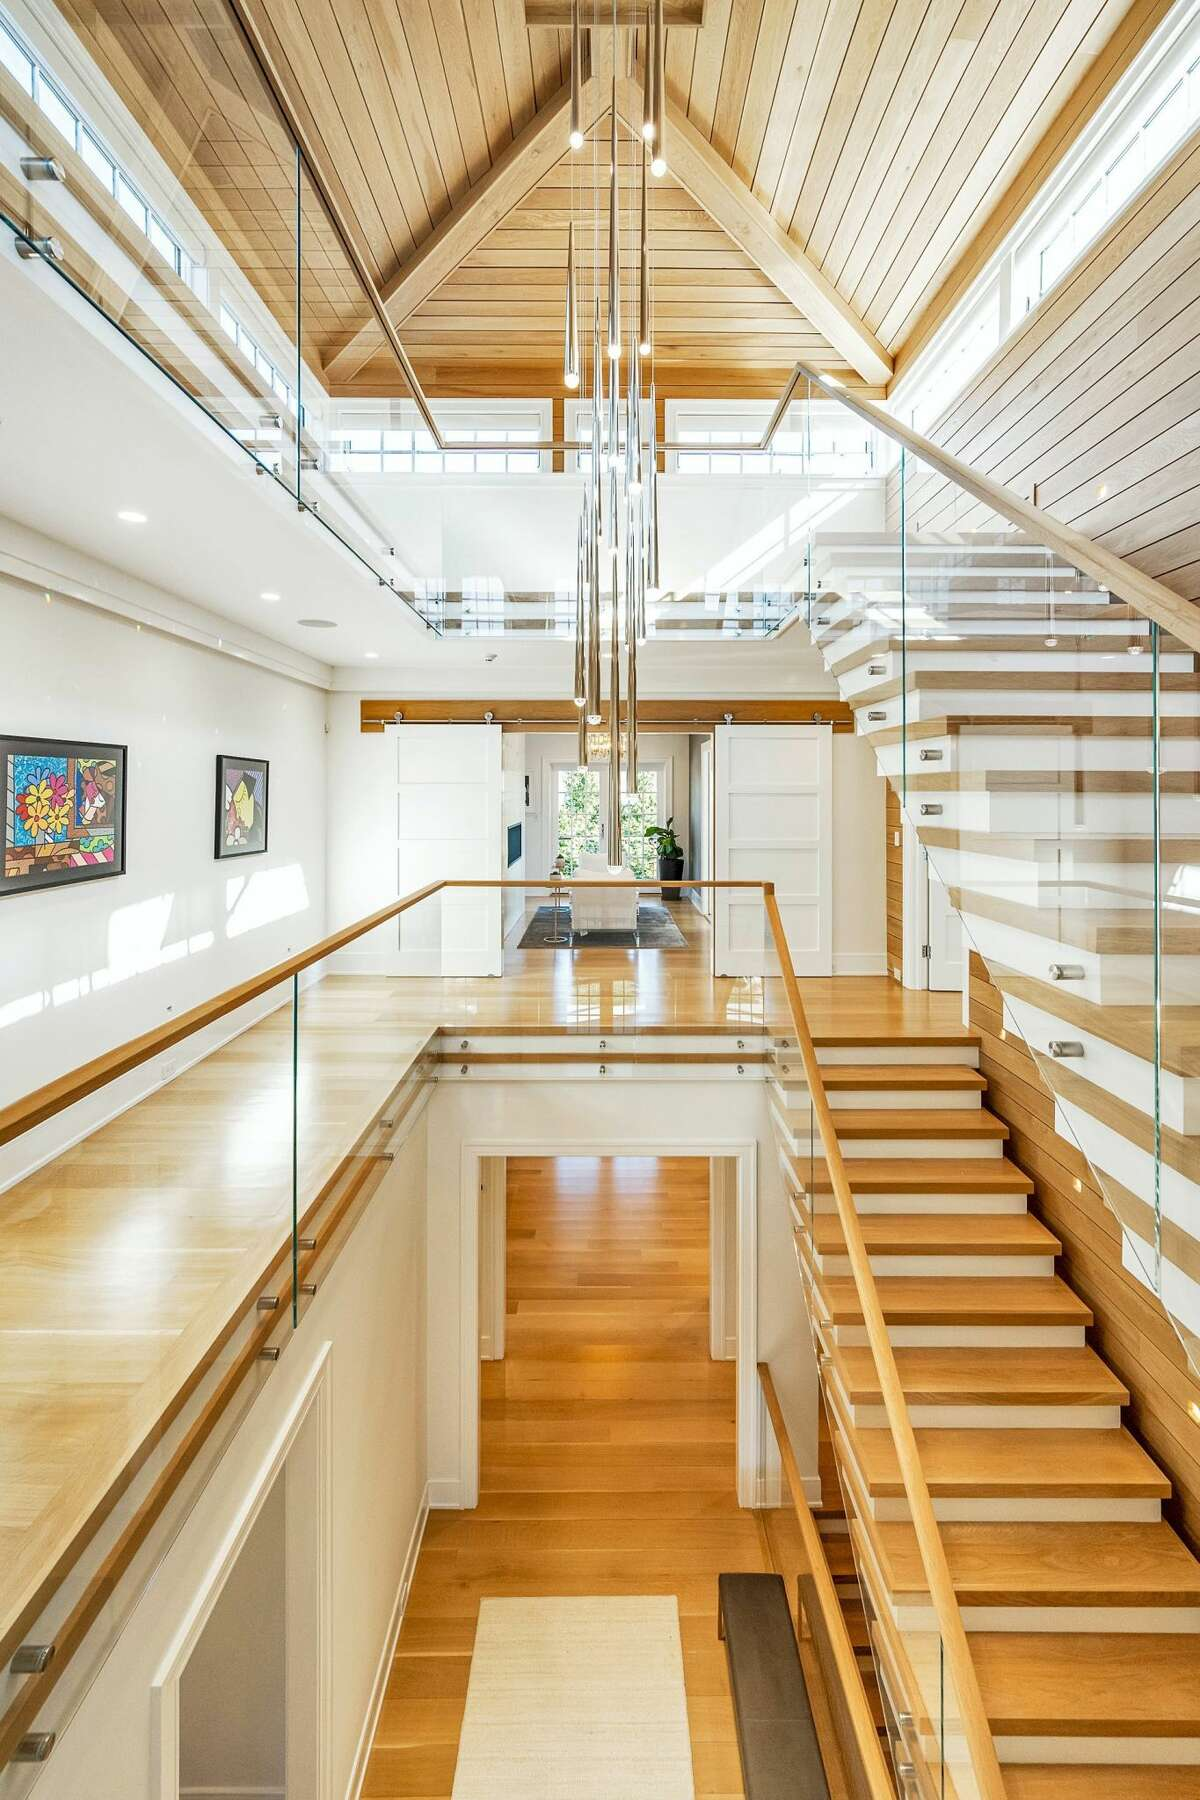 The floating stairs in the Old Greenwich home are enclosed by glass railings and connect all four levels of living. View listing